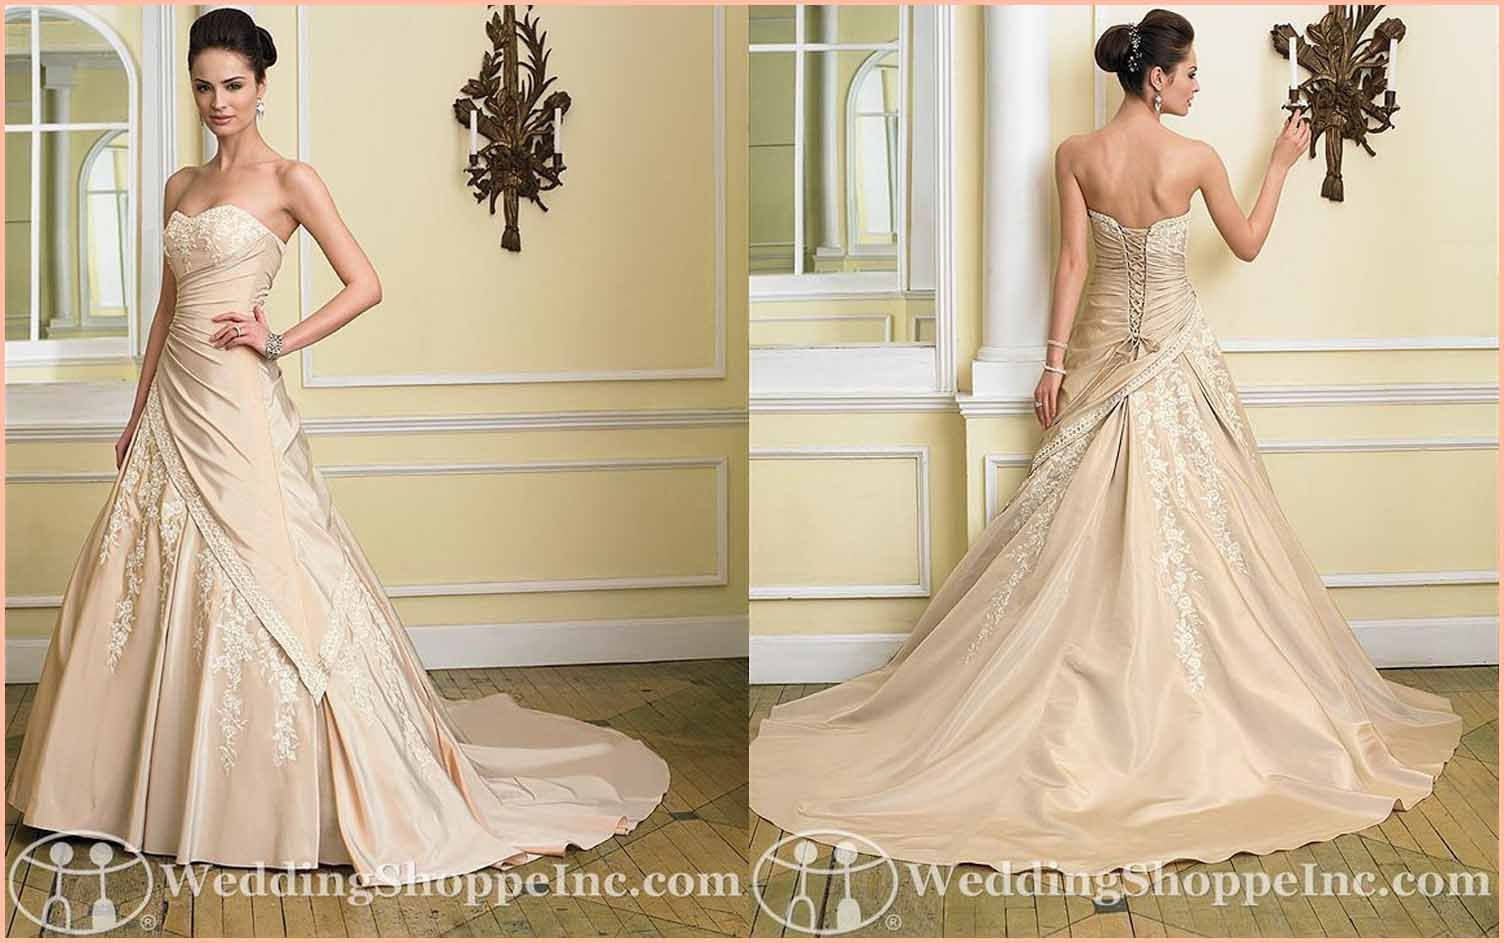 Peach colored wedding dresses colored wedding gowns find your colored wedding gowns the light salmon wedding dress ombrellifo Gallery